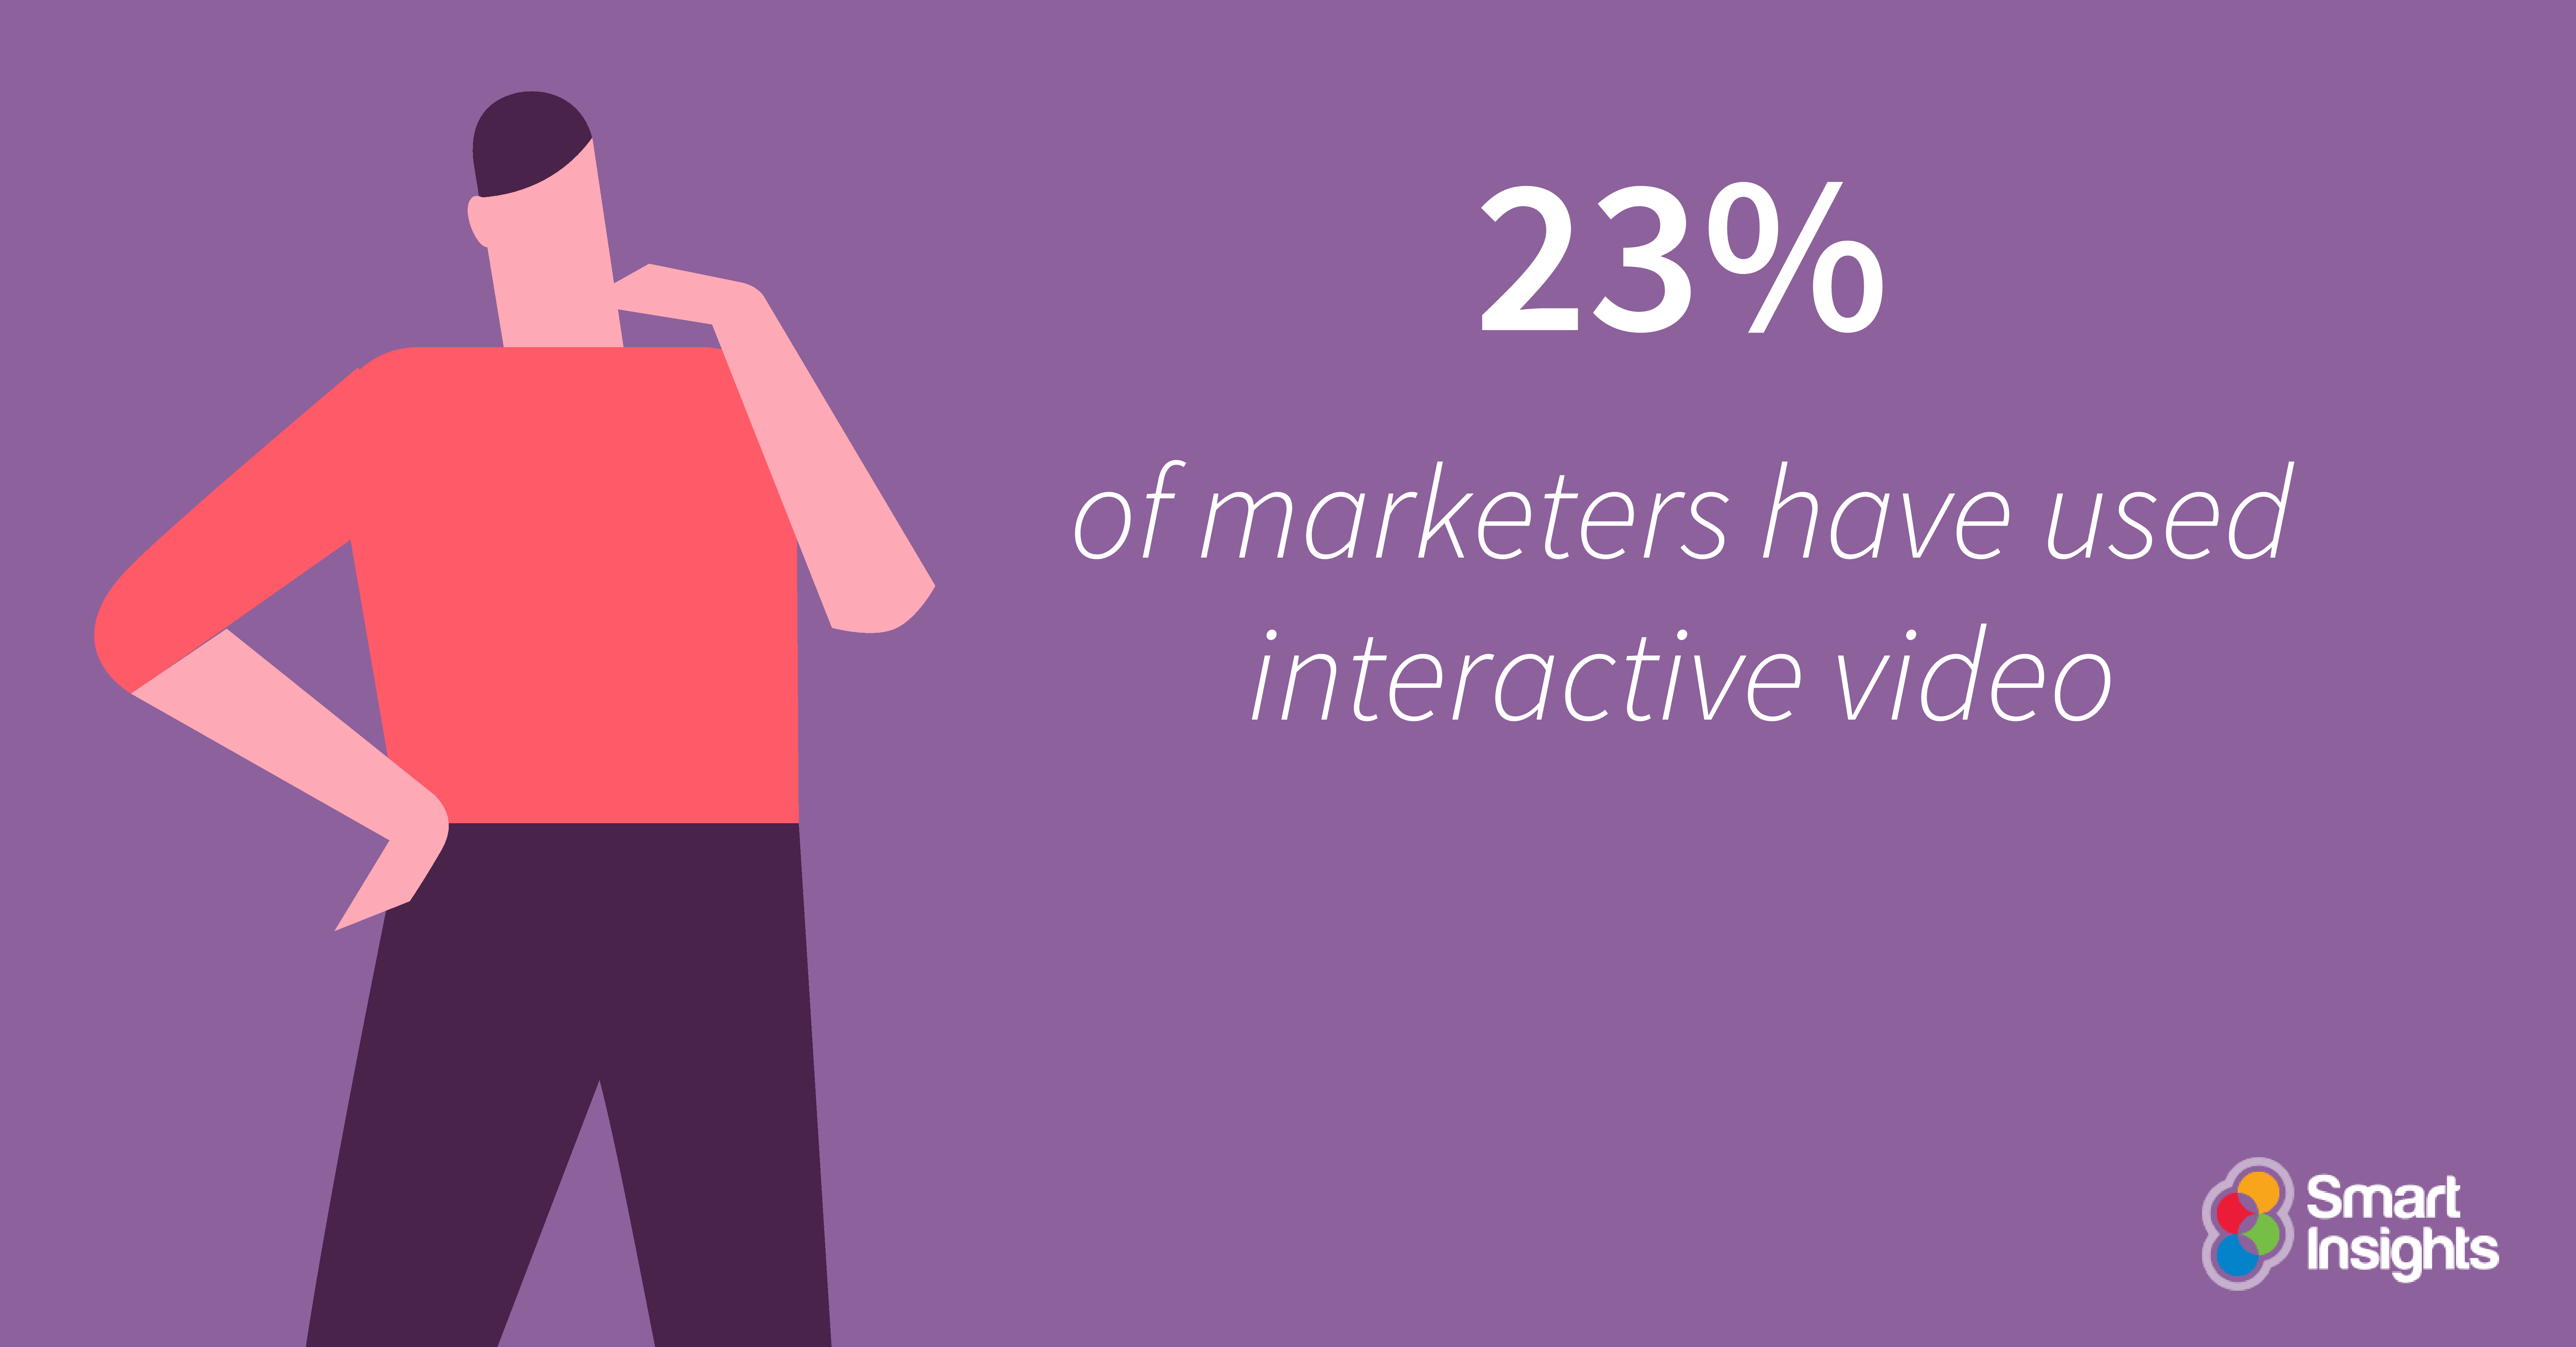 23% of marketers have used interactive video